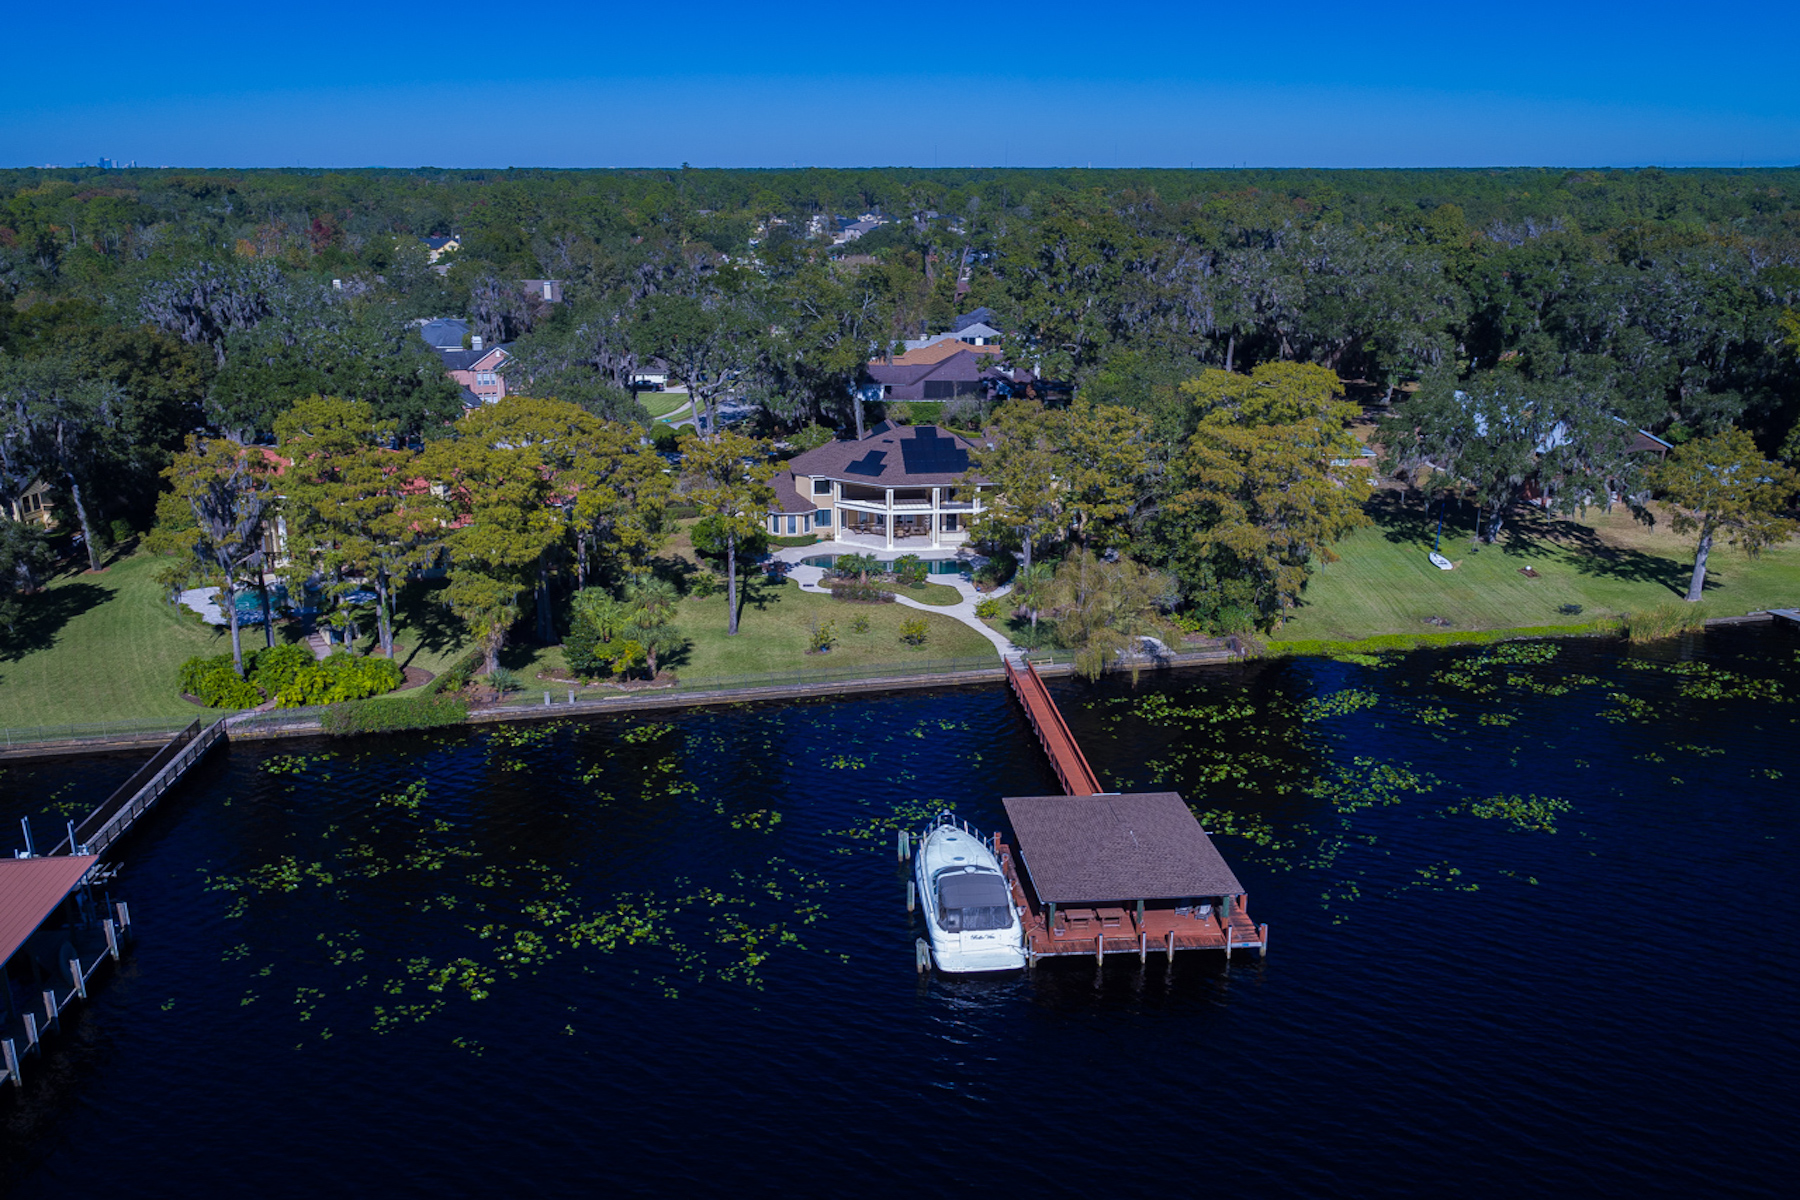 Single Family Home for Sale at 12799 Camelia Bay 12799 Camellia Bay Drive East Jacksonville, Florida 32223 United States